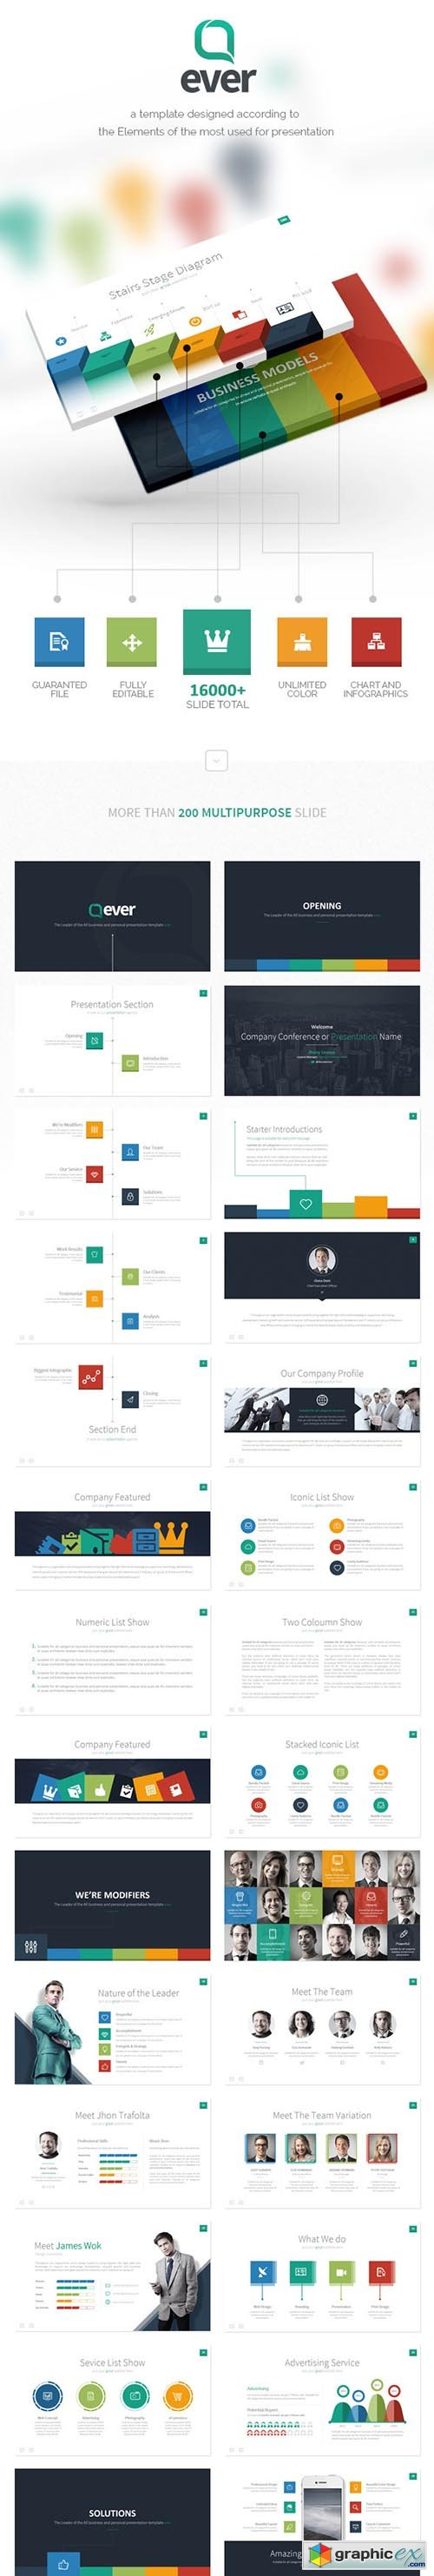 ever - multipurpose presentation template » free download vector, Presentation templates